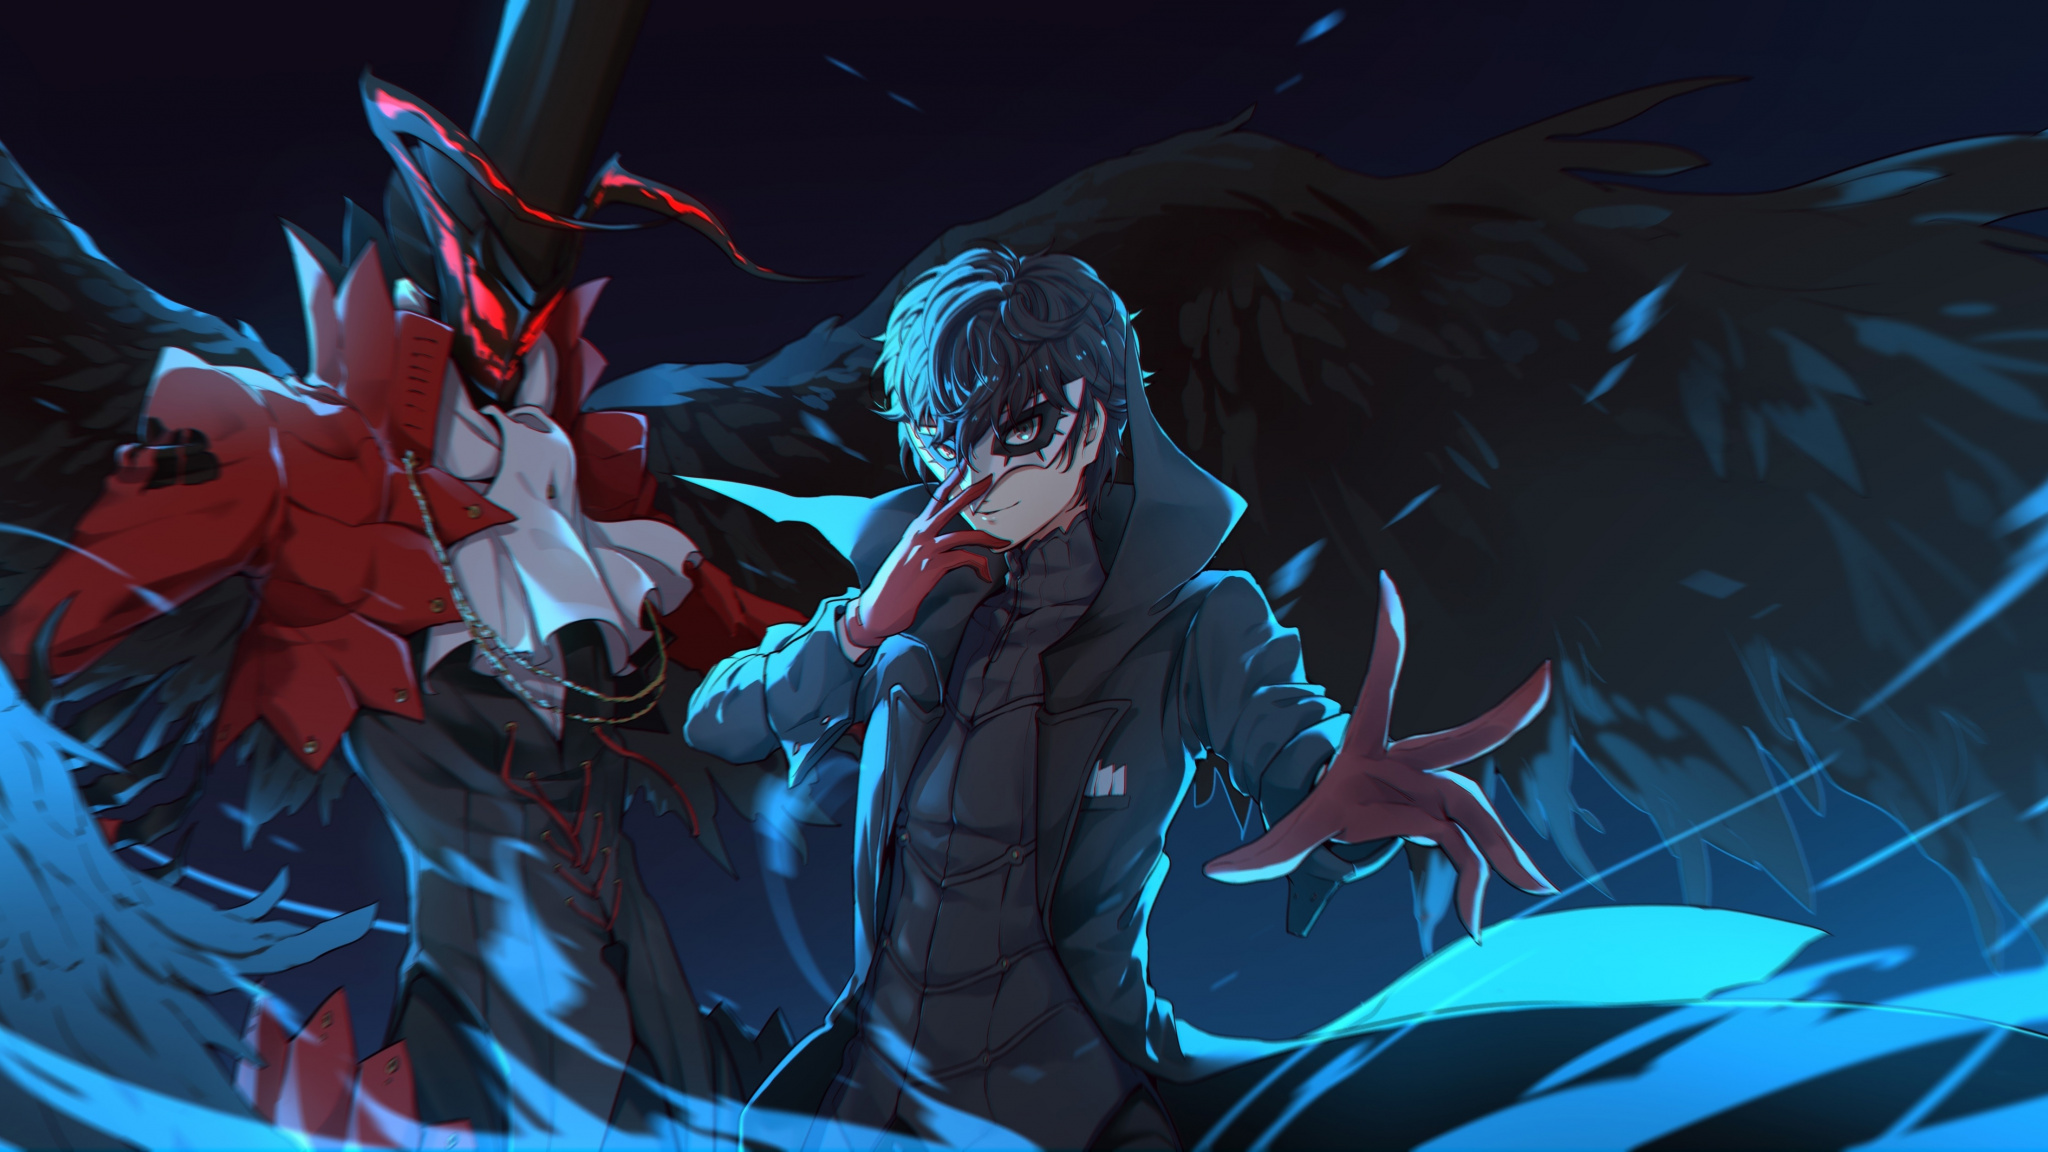 Akira Kurusu Anime Persona 5 Art Wallpaper 1080 X 2160 Wallpaper Anime 2048x1152 Wallpaper Teahub Io